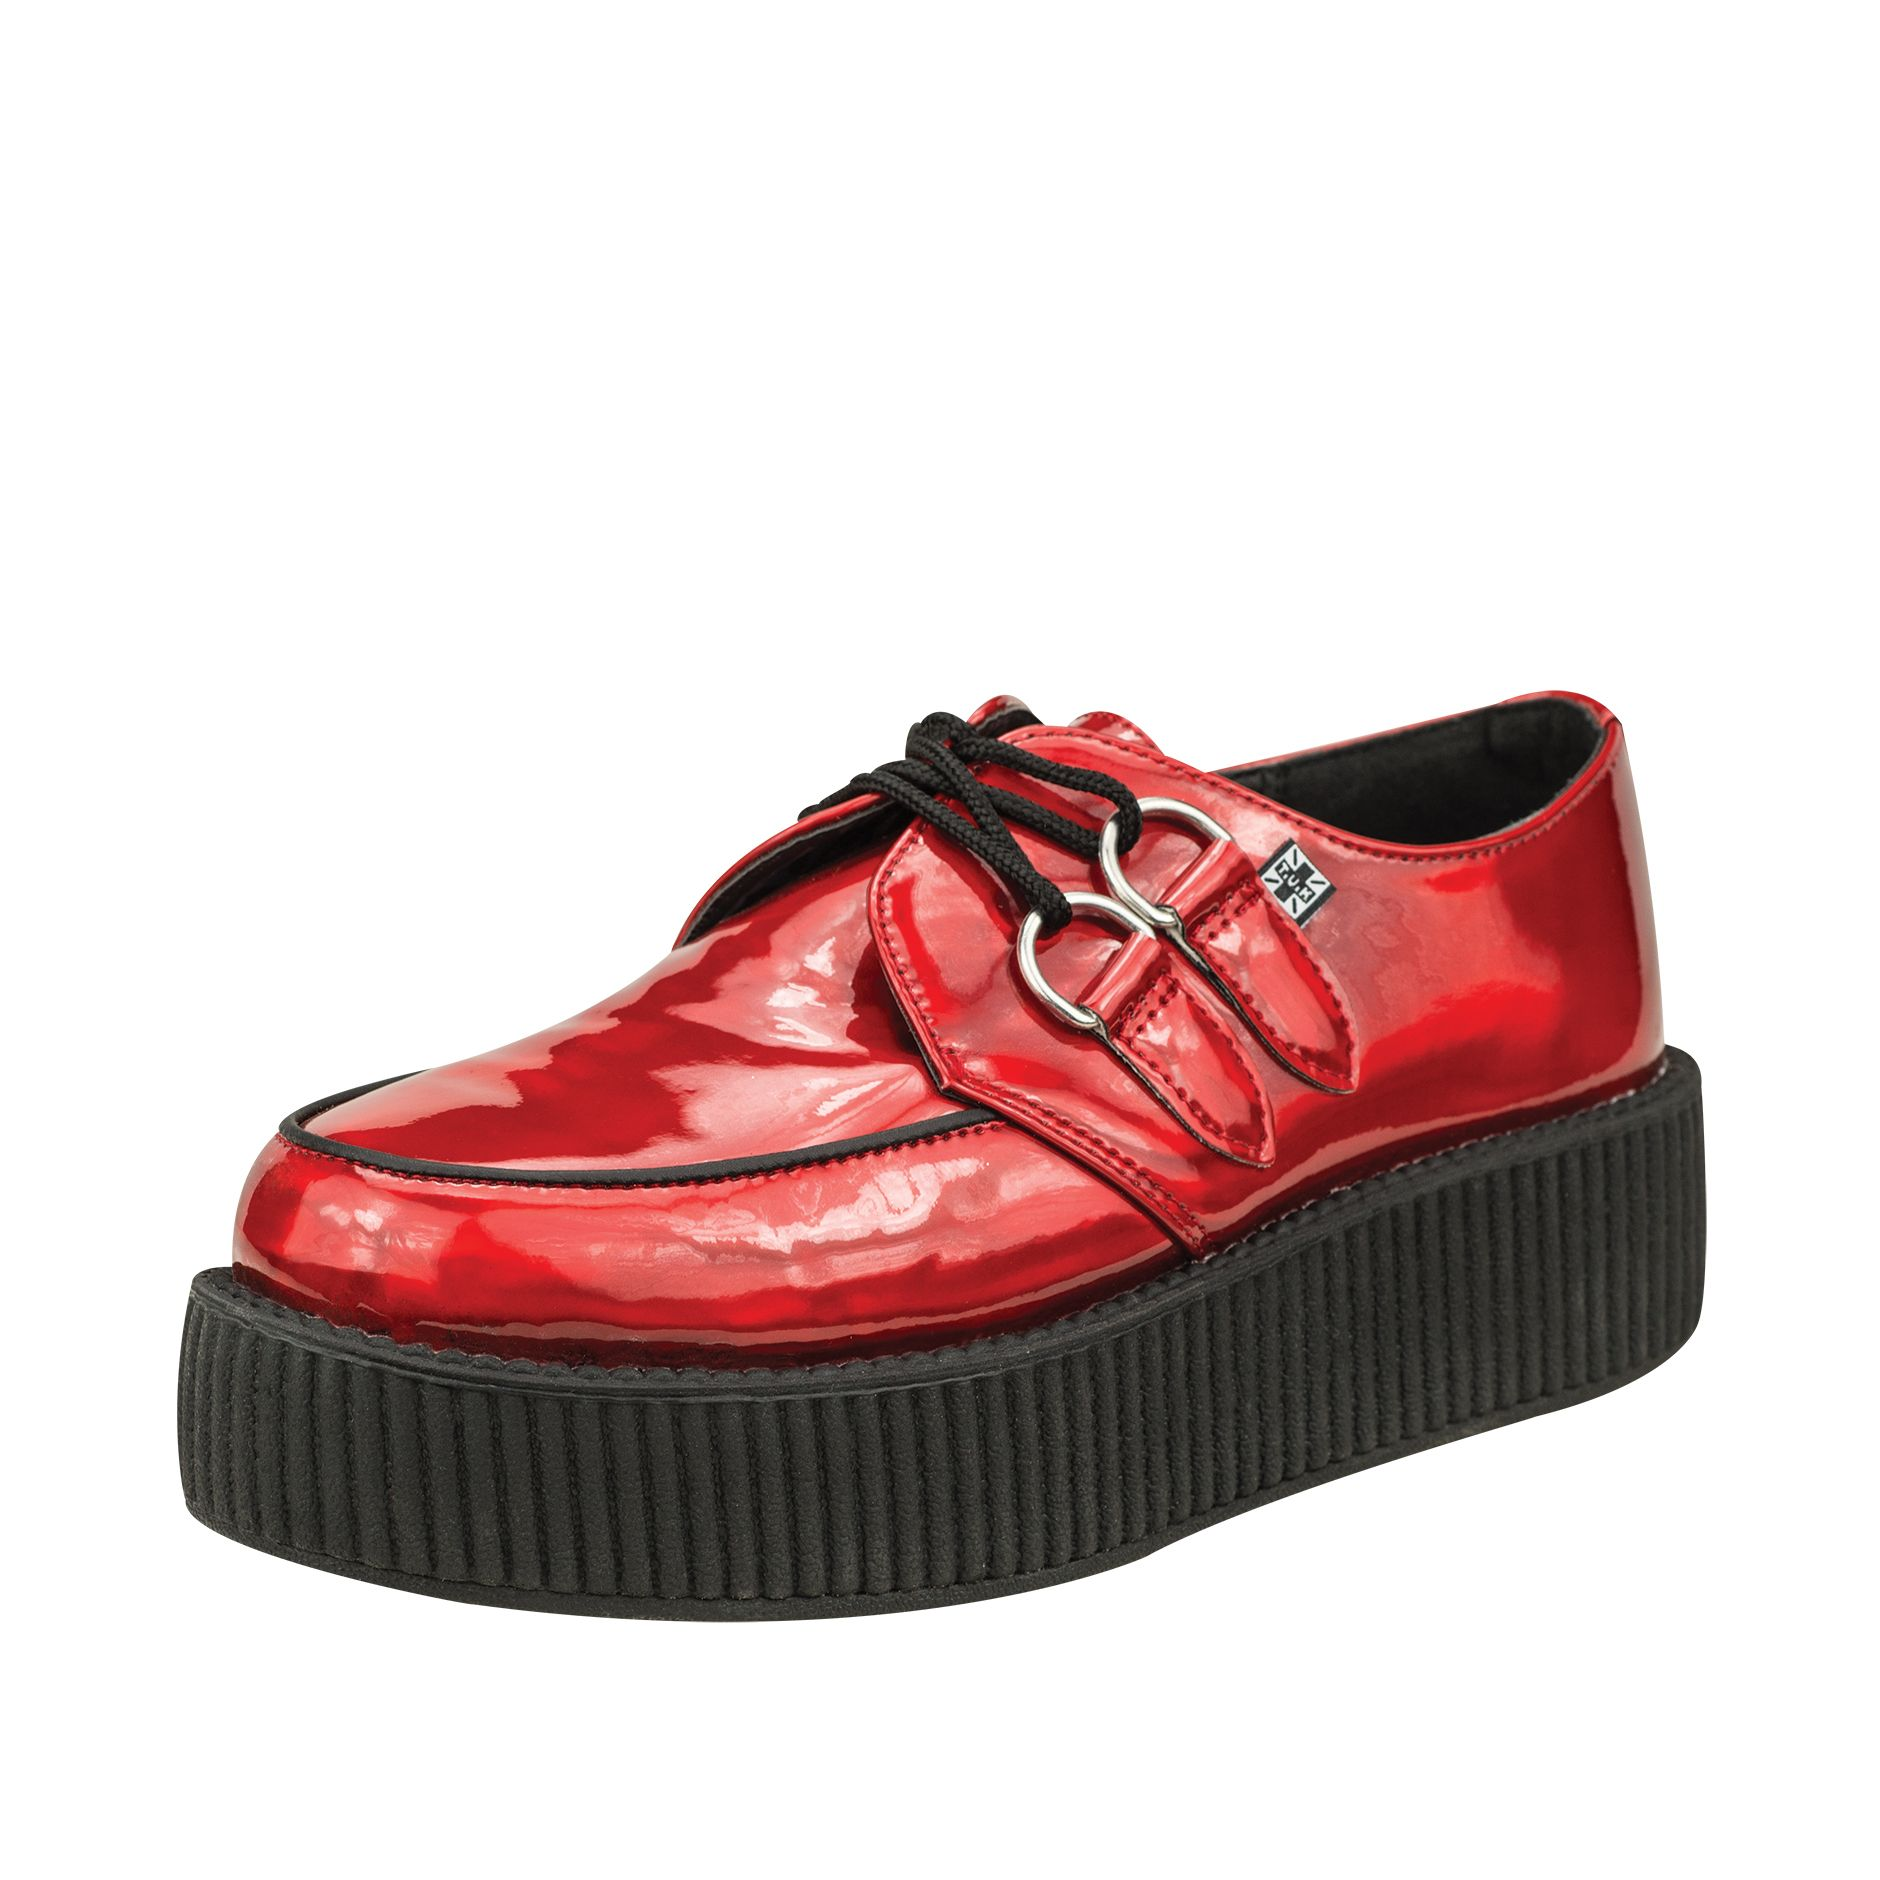 e79dc50787c AV8903 Red Patent Viva Creeper